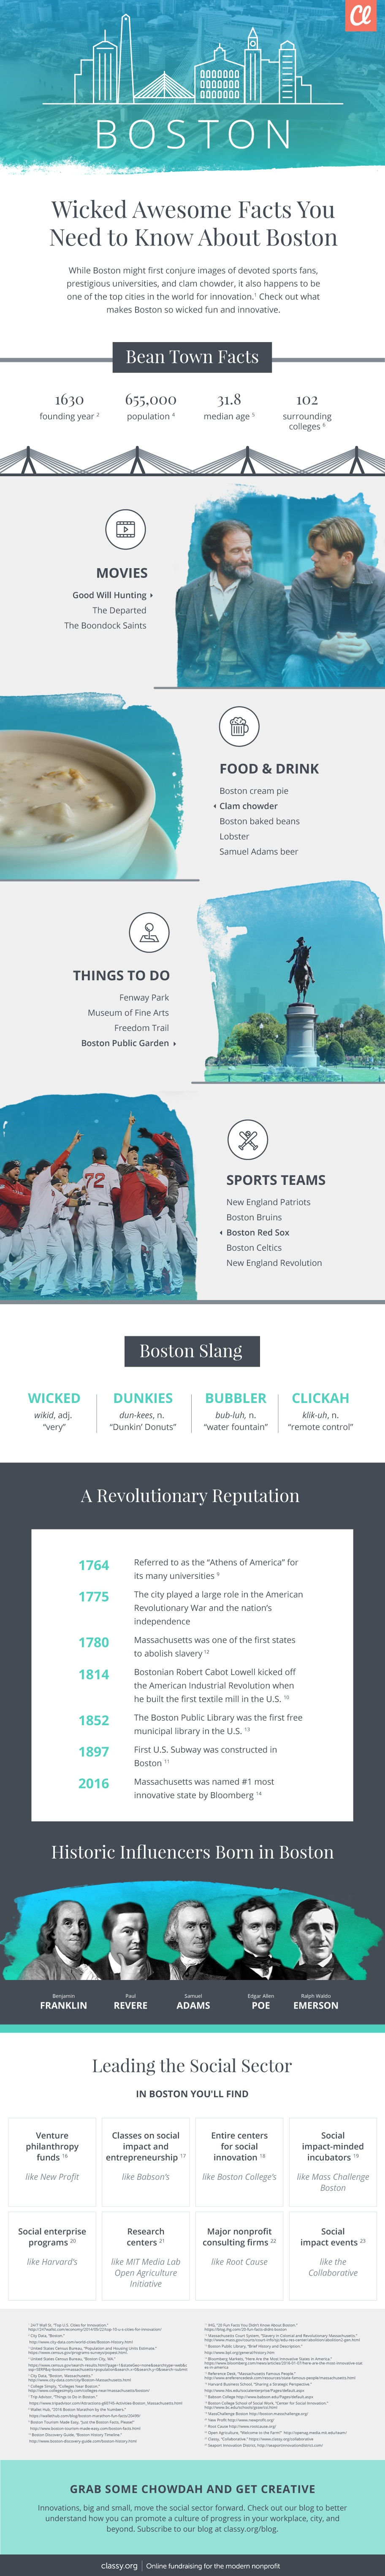 Facts About Boston Infographic